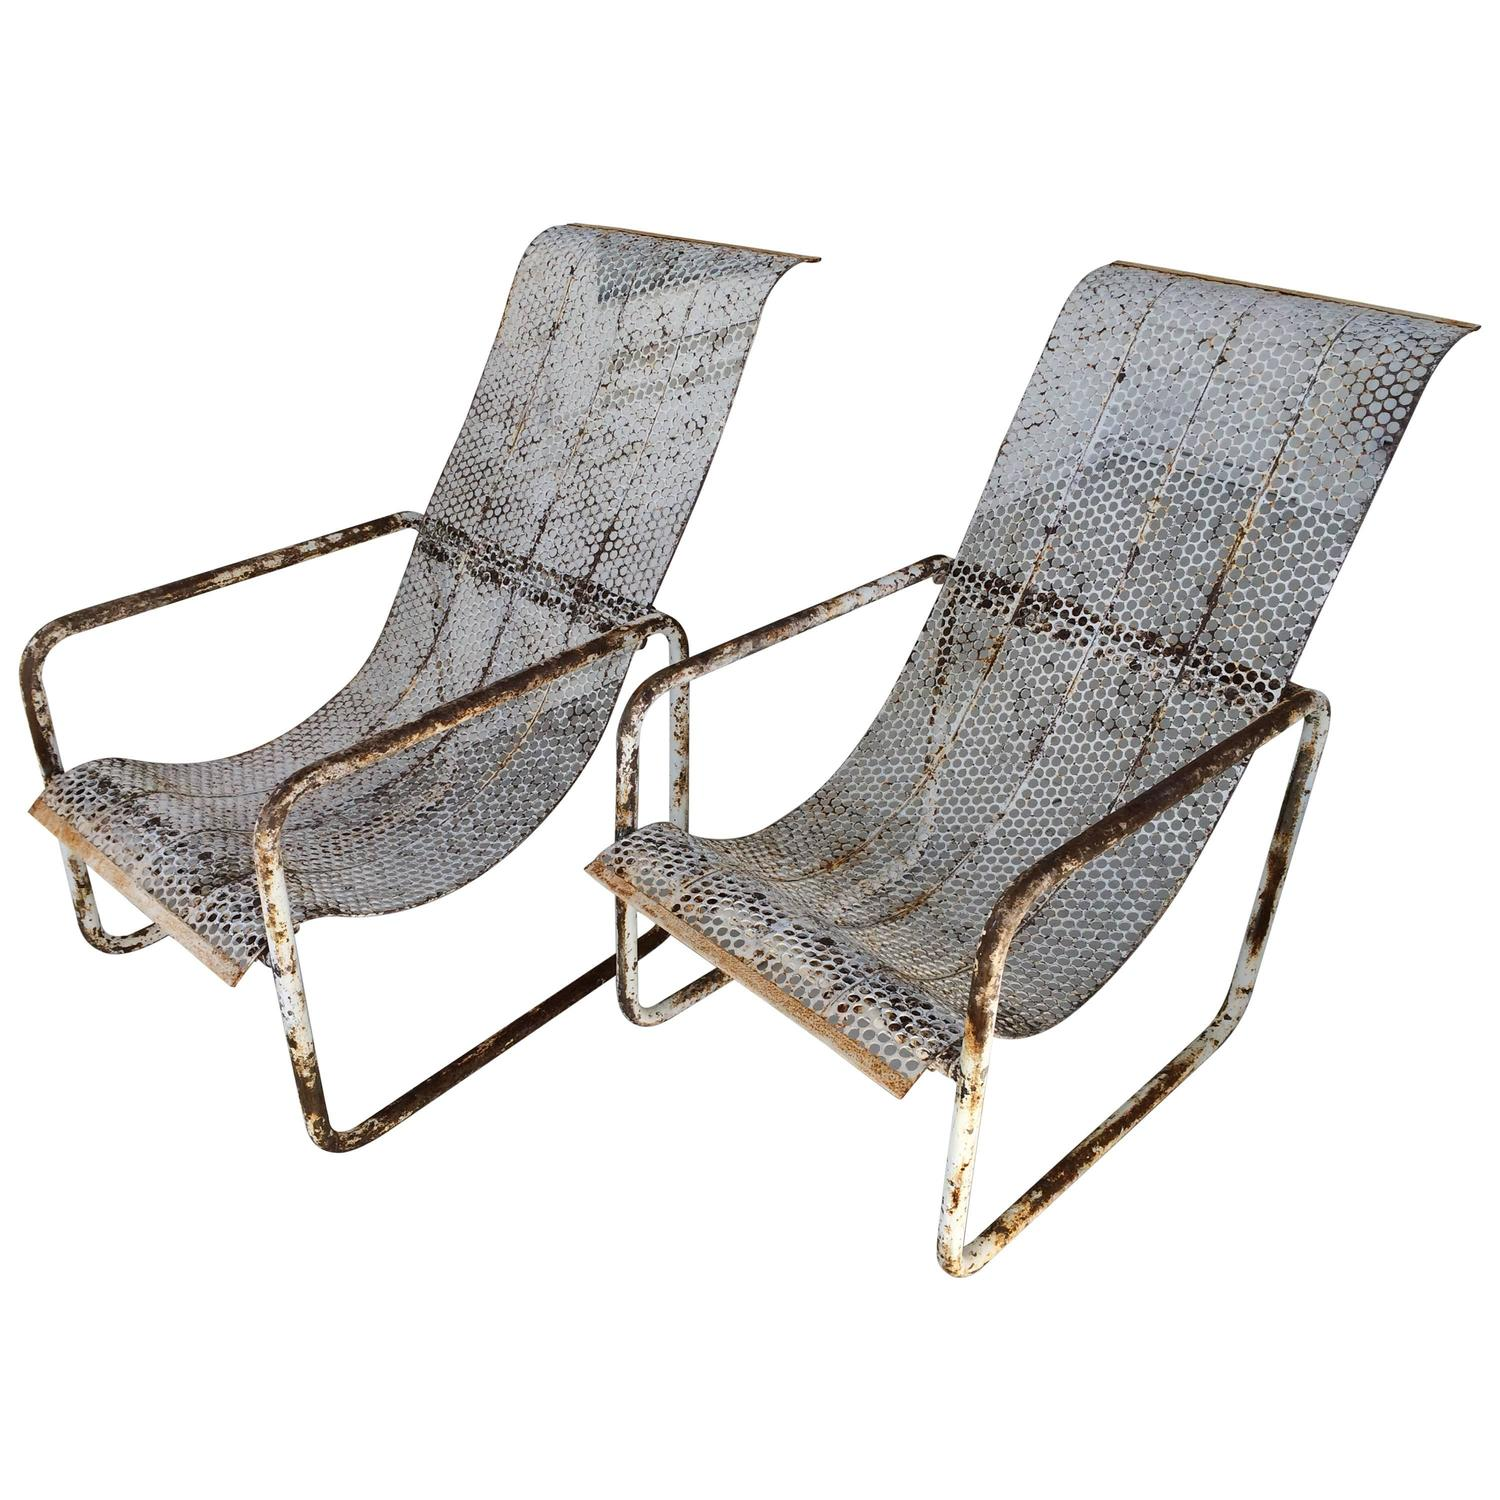 french industrial mid century steel garden chairs at 1stdibs